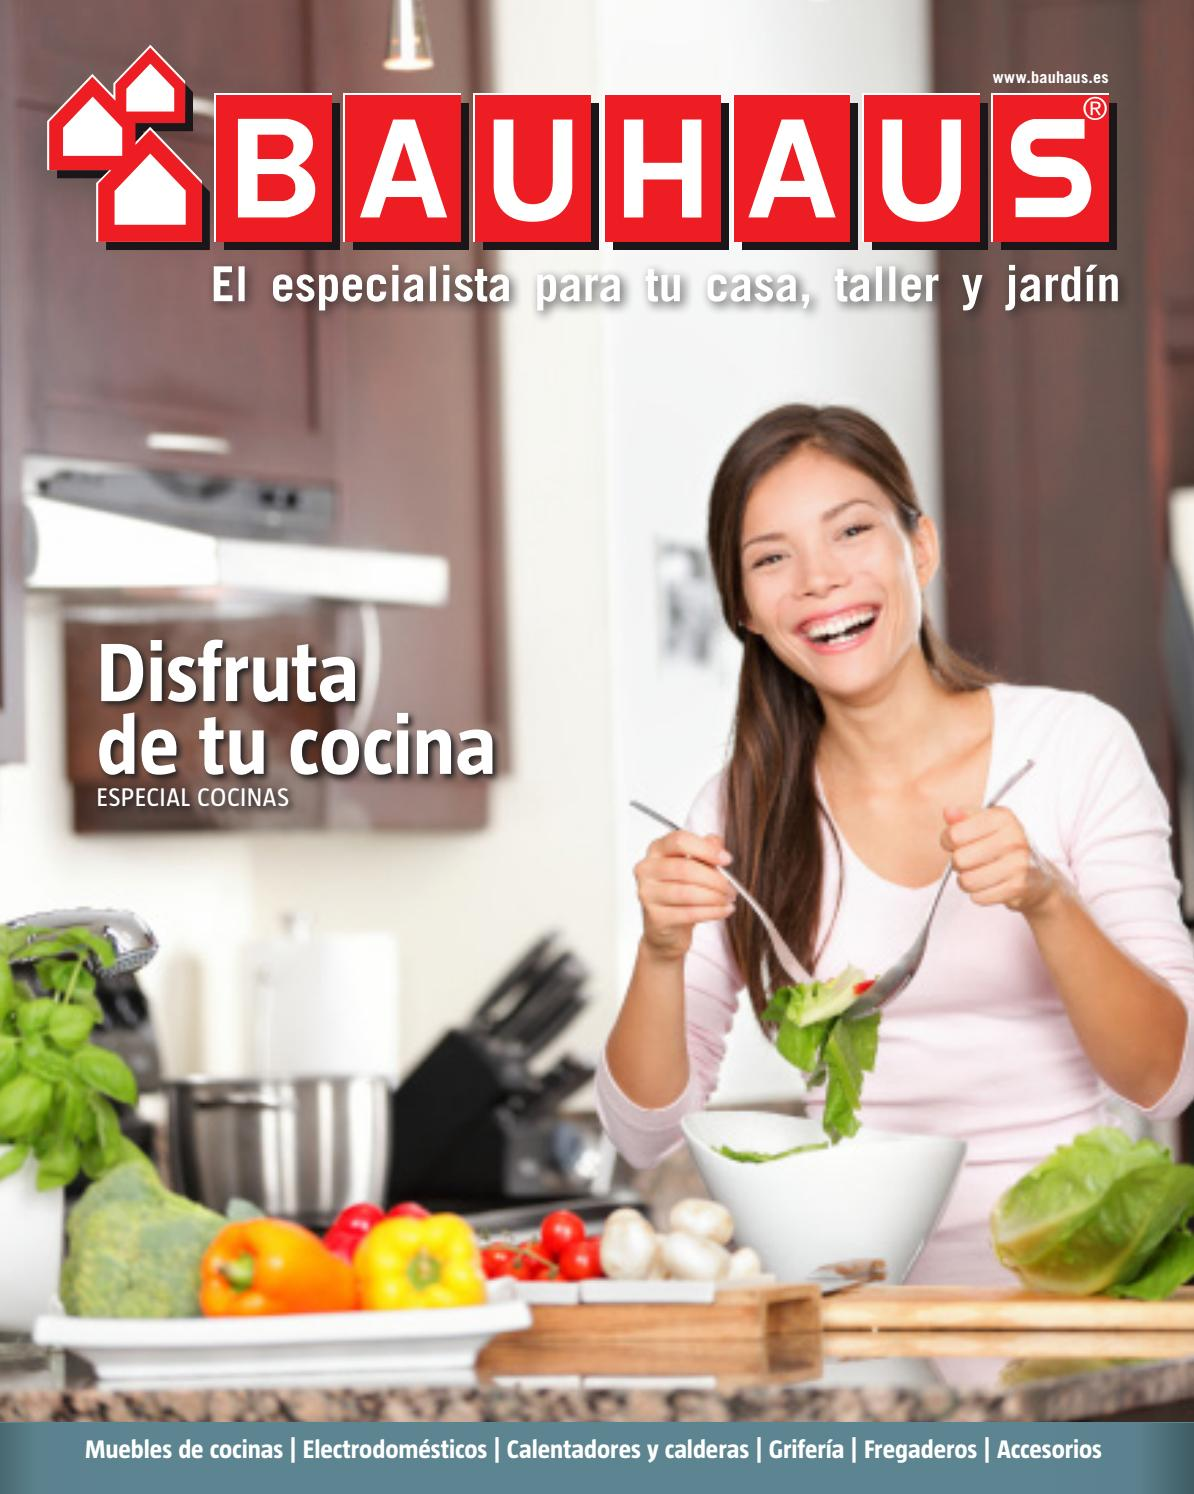 Especial cocinas by bauhaus issuu for Bauhaus griferia cocina